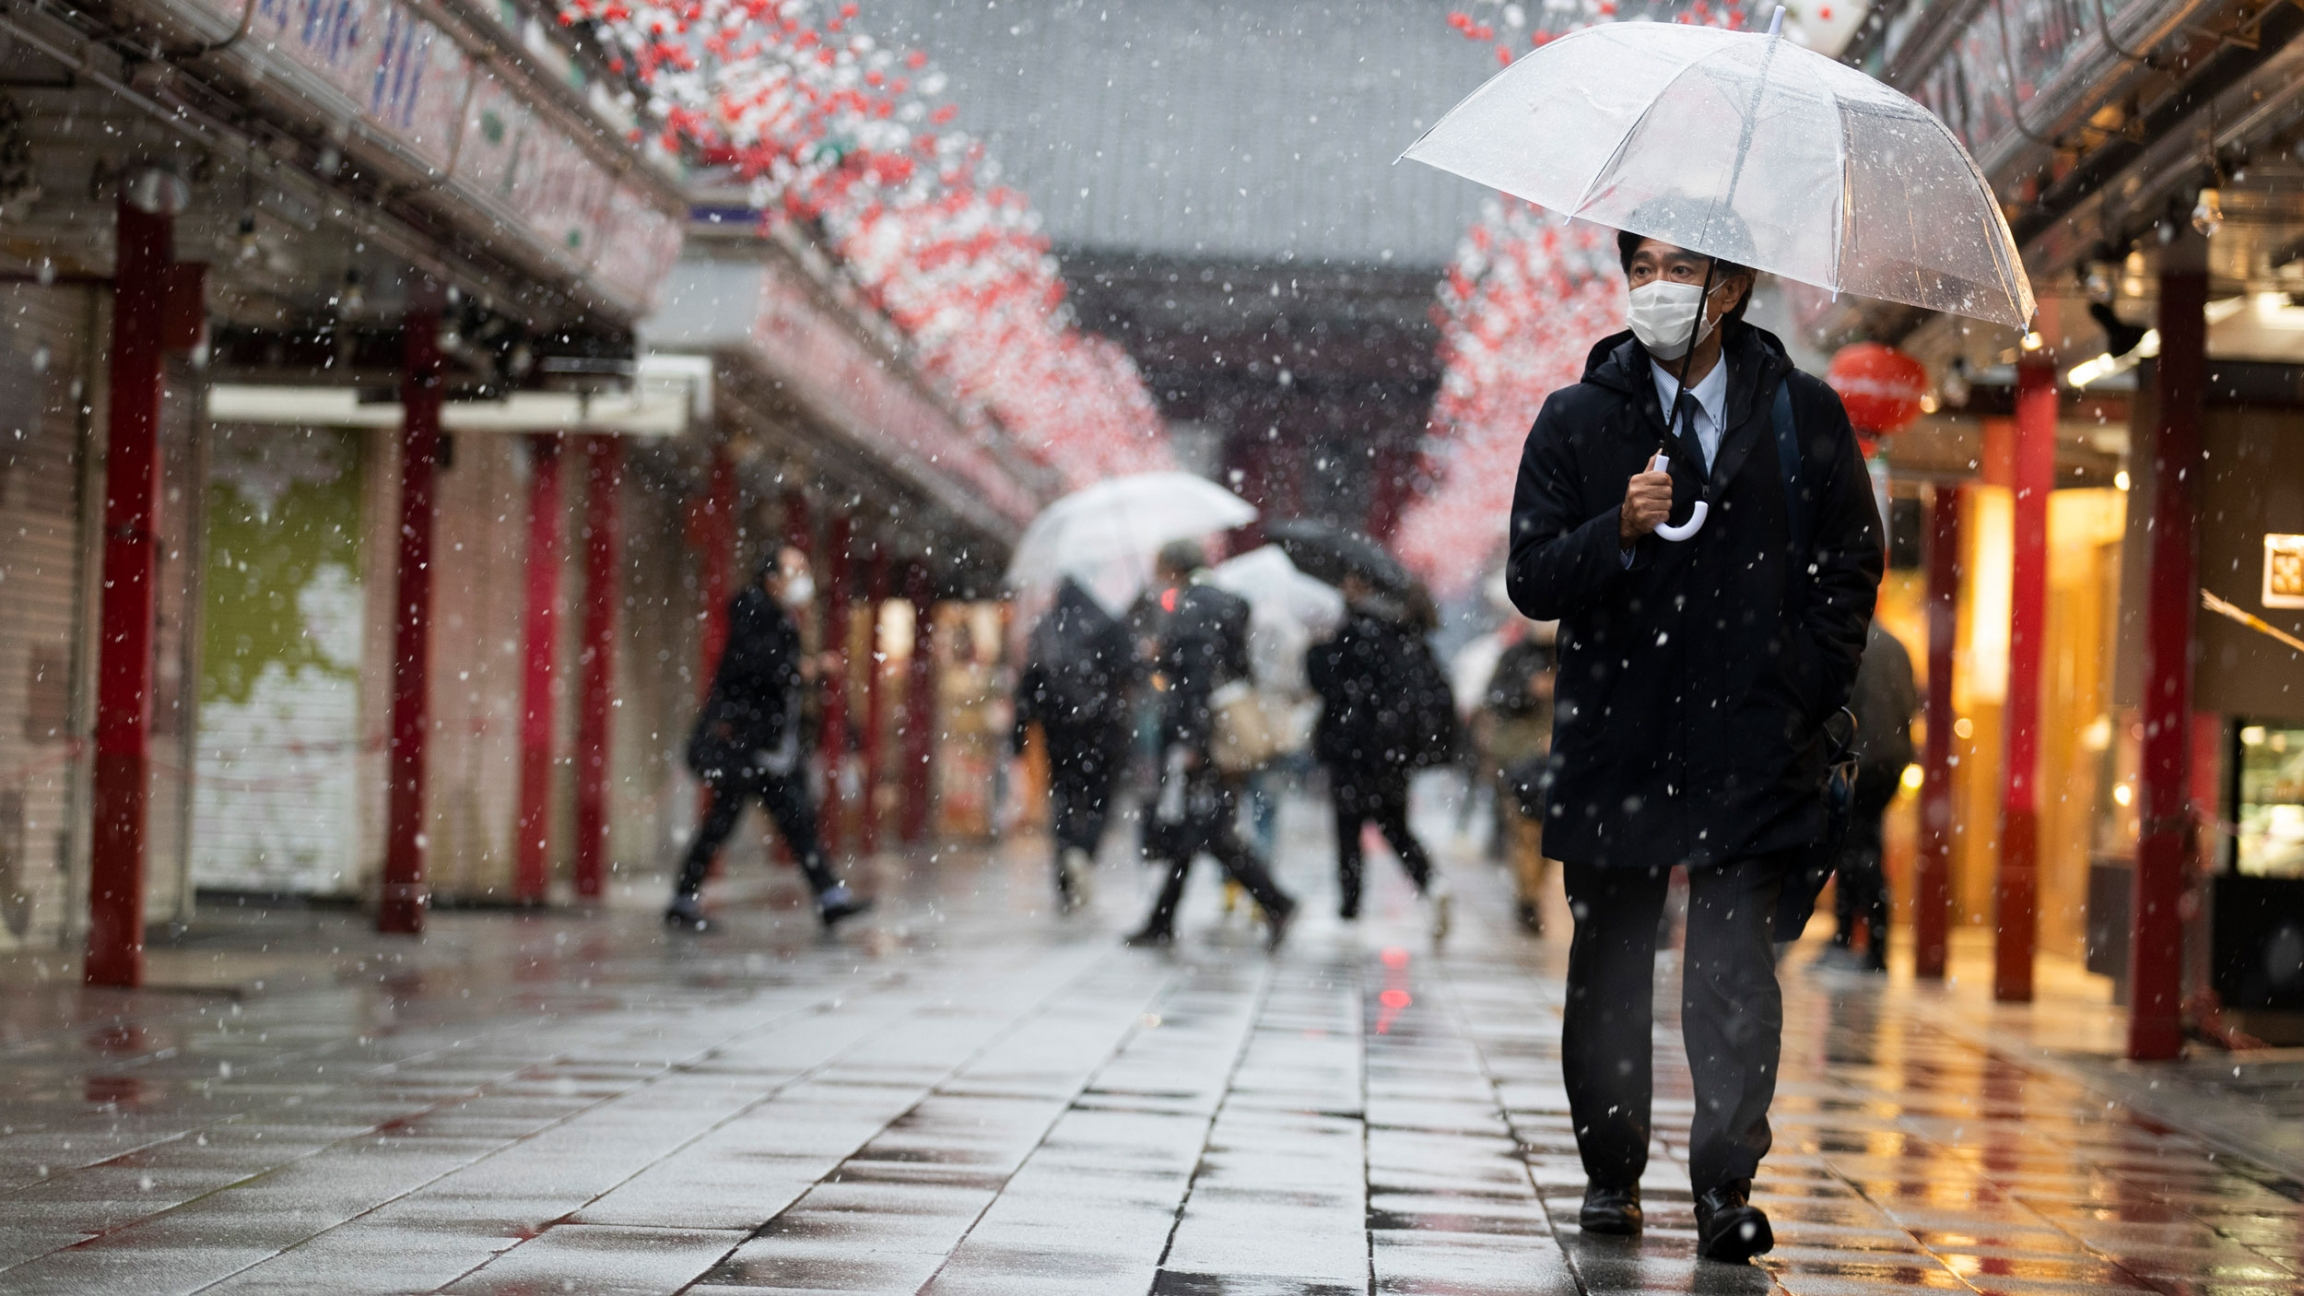 A man is shown carrying a clear umbrella and wearing a face mask while walking with his left hand in his pocket.